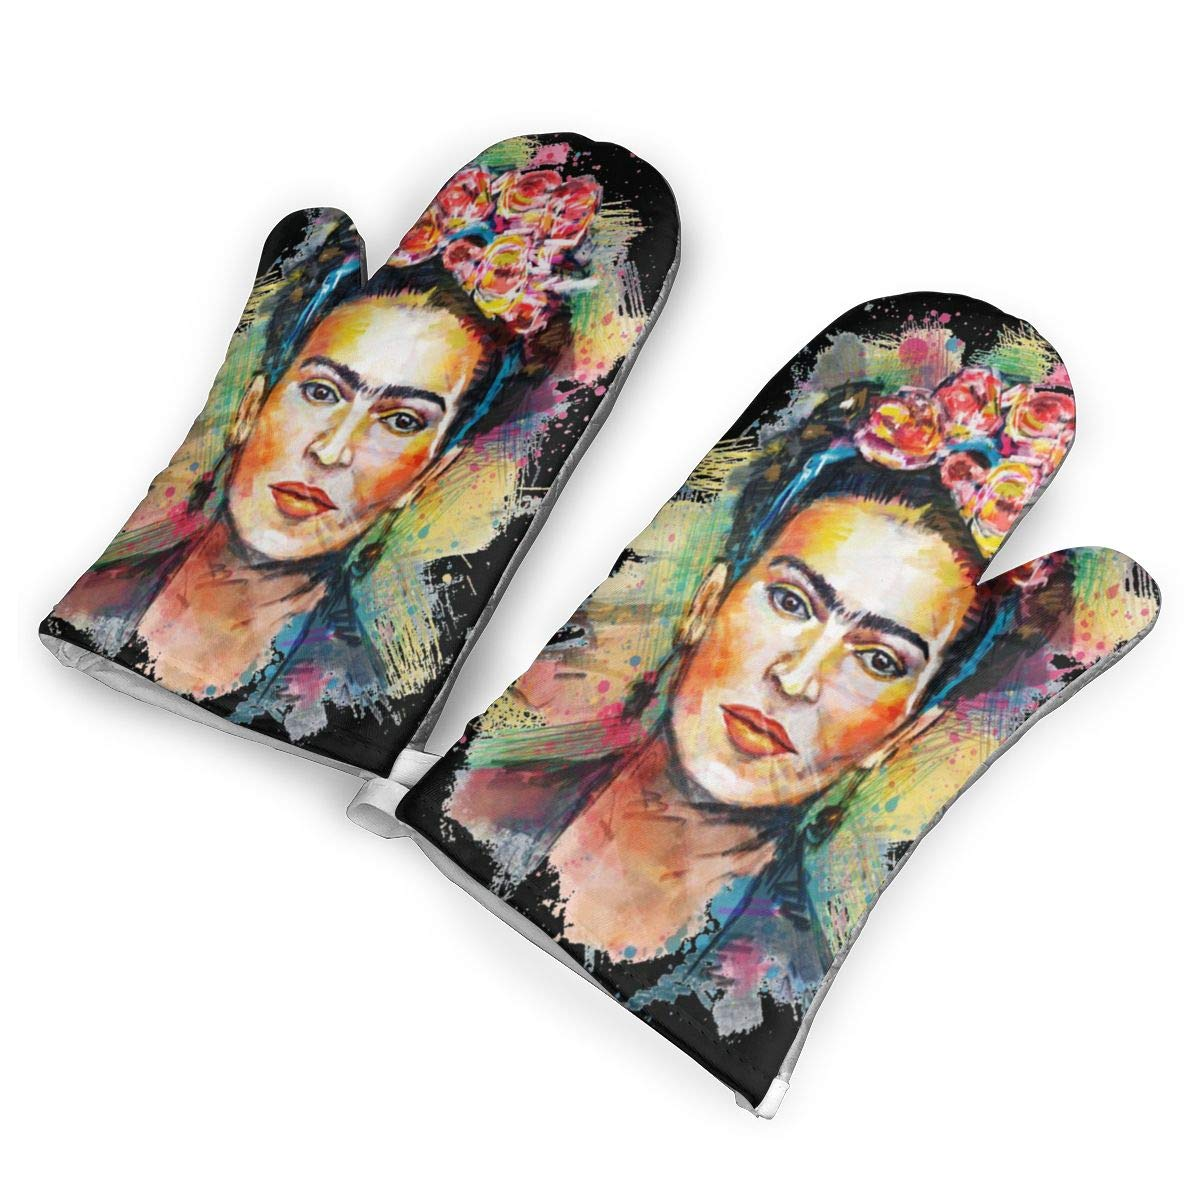 not Frida Kahlo En Pintura Oven Mitts with Polyester Fabric Printed Pattern,1 Pair of Heat Resistant Oven Gloves for Cooking,Baking,Grilling,Barbecue Potholders